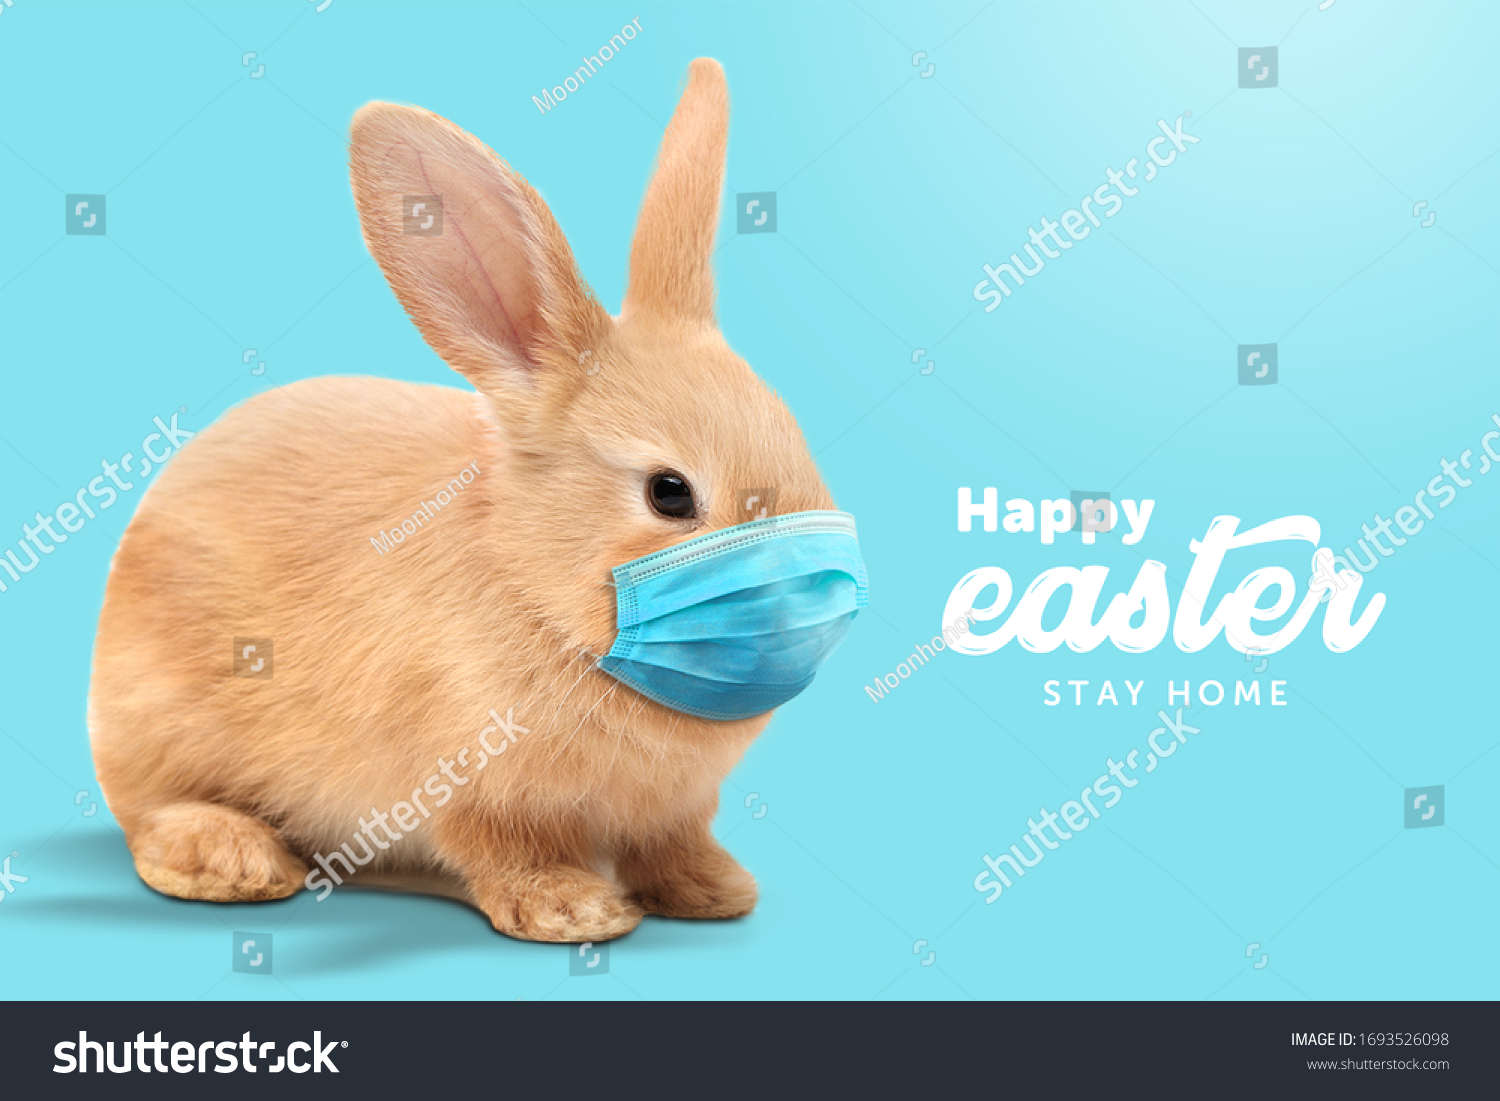 Creative minimal Happy Easter design  the rabbit inside of home line with mask for coronavirus (Covid-19) colorful eggs around the composition shows message Happy easter and stay home. (Twitter size) #1693526098